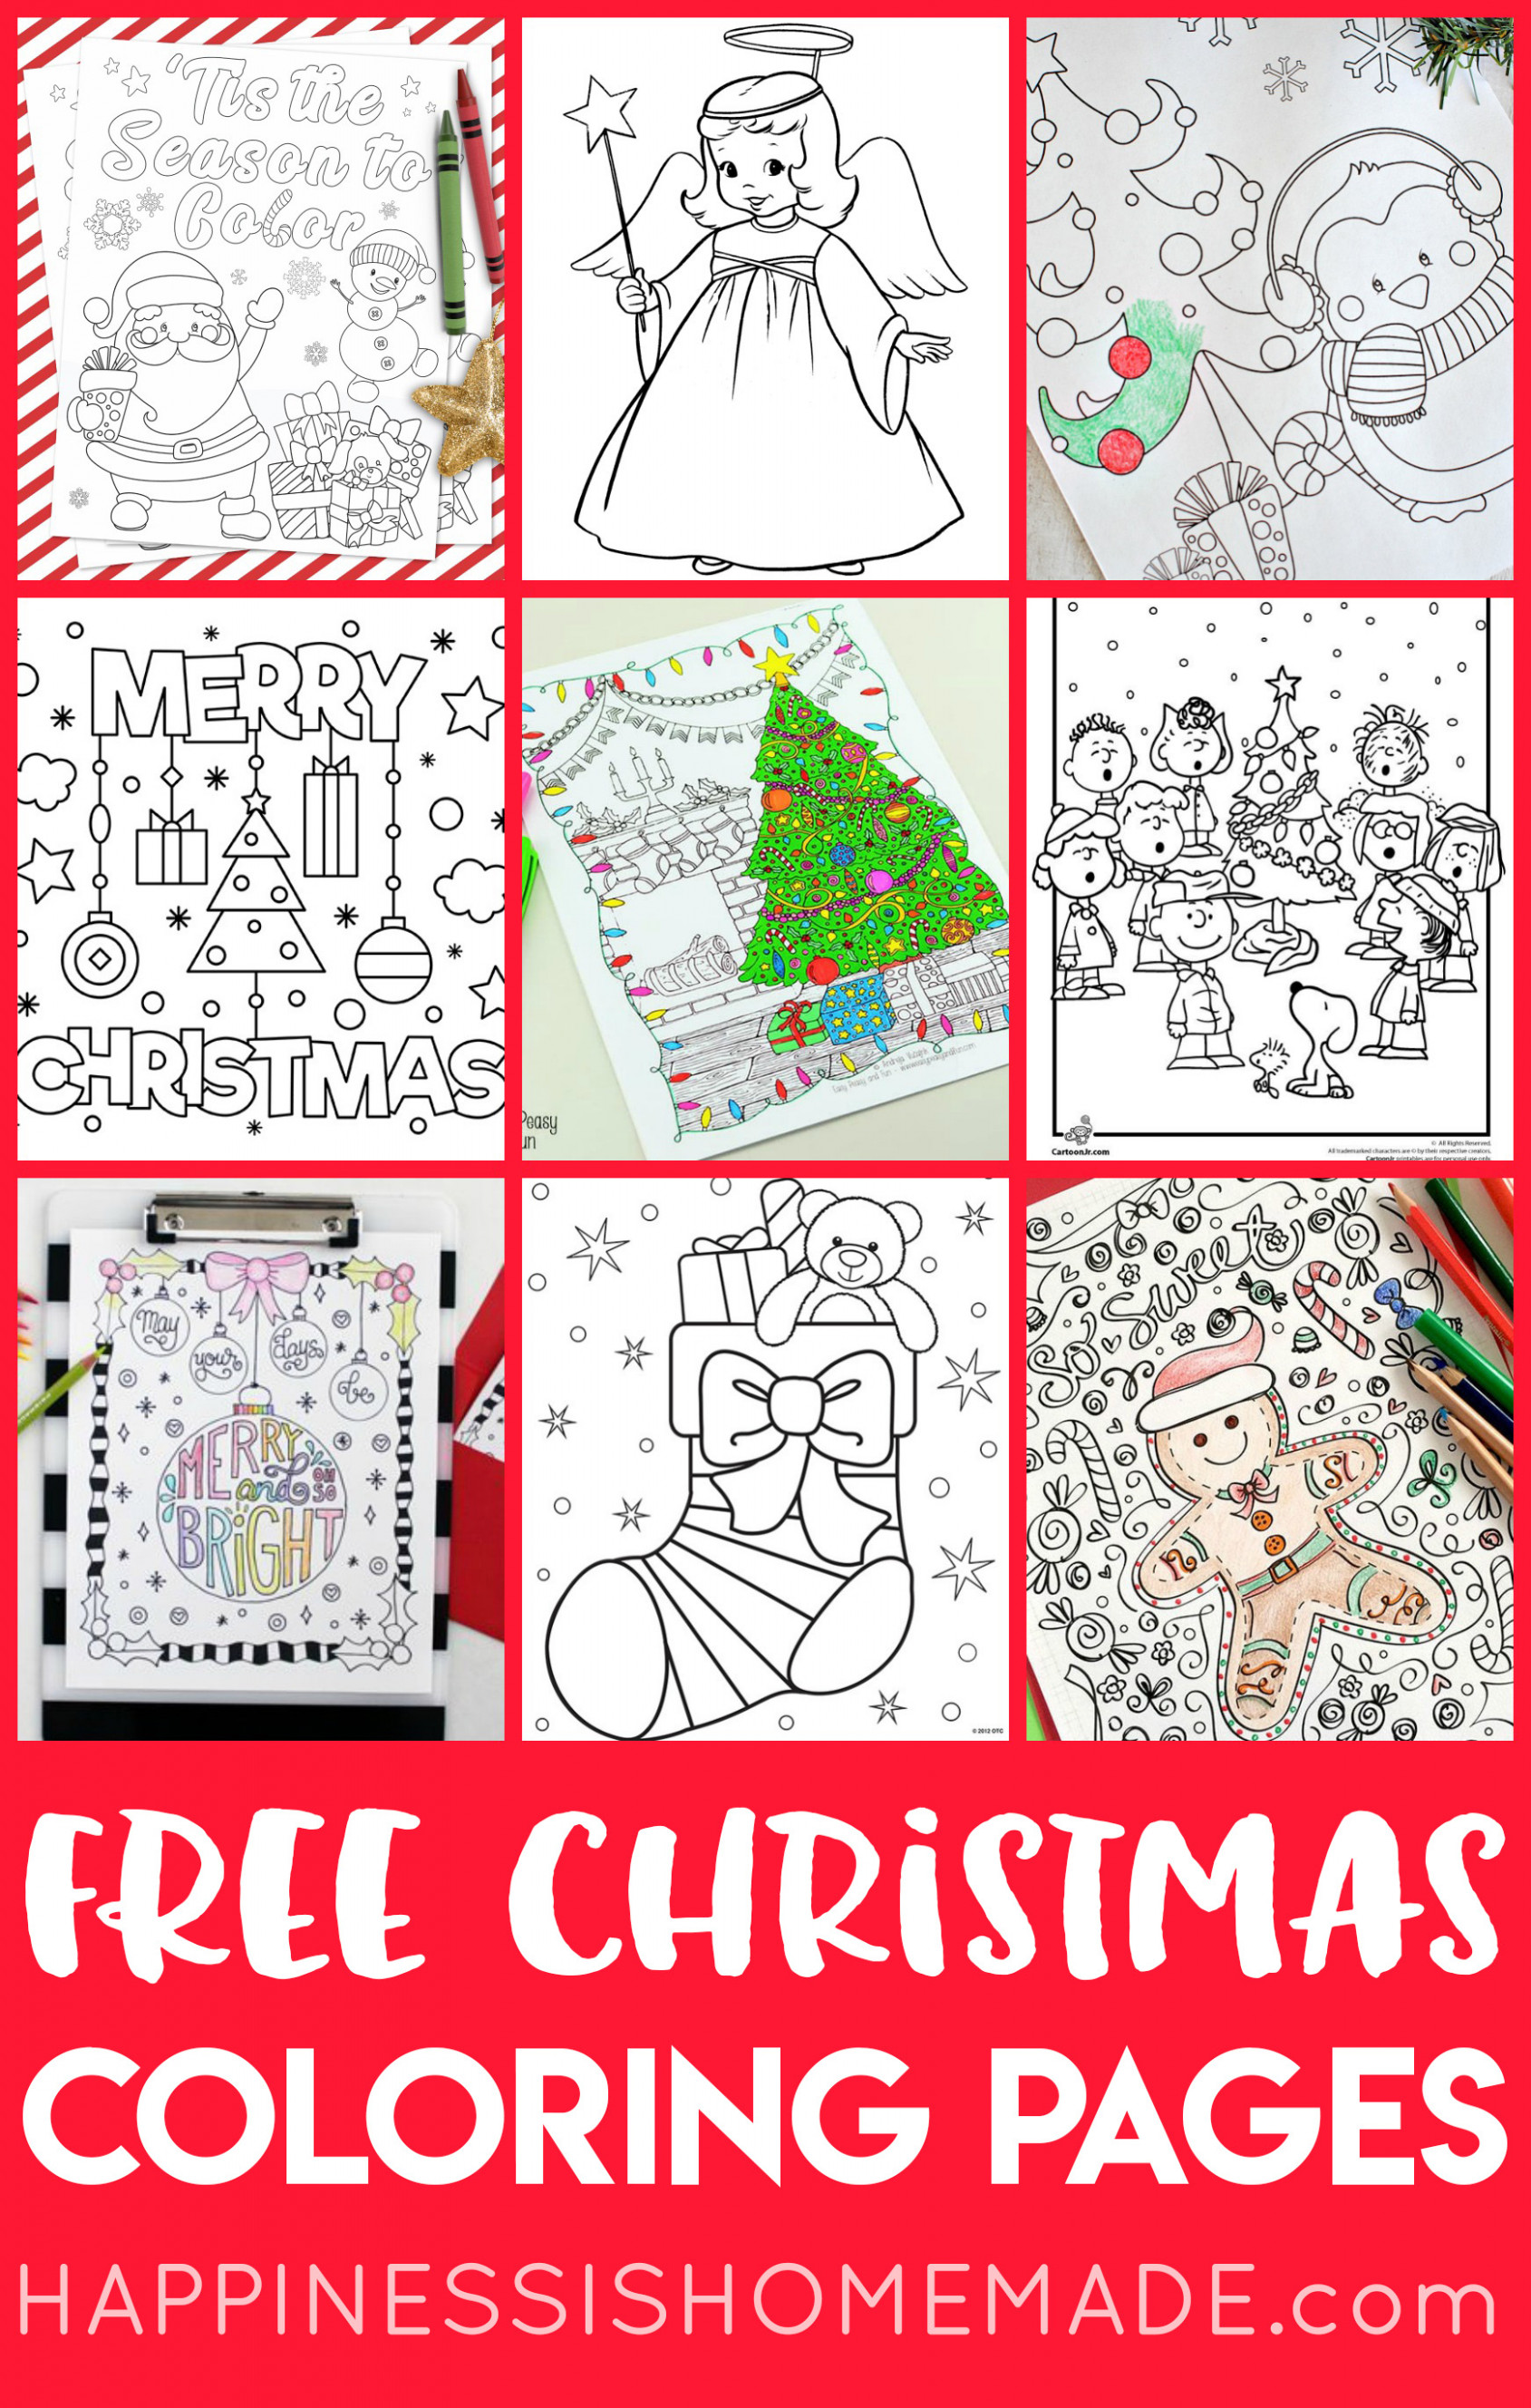 FREE Christmas Coloring Pages for Adults and Kids - Happiness is ...